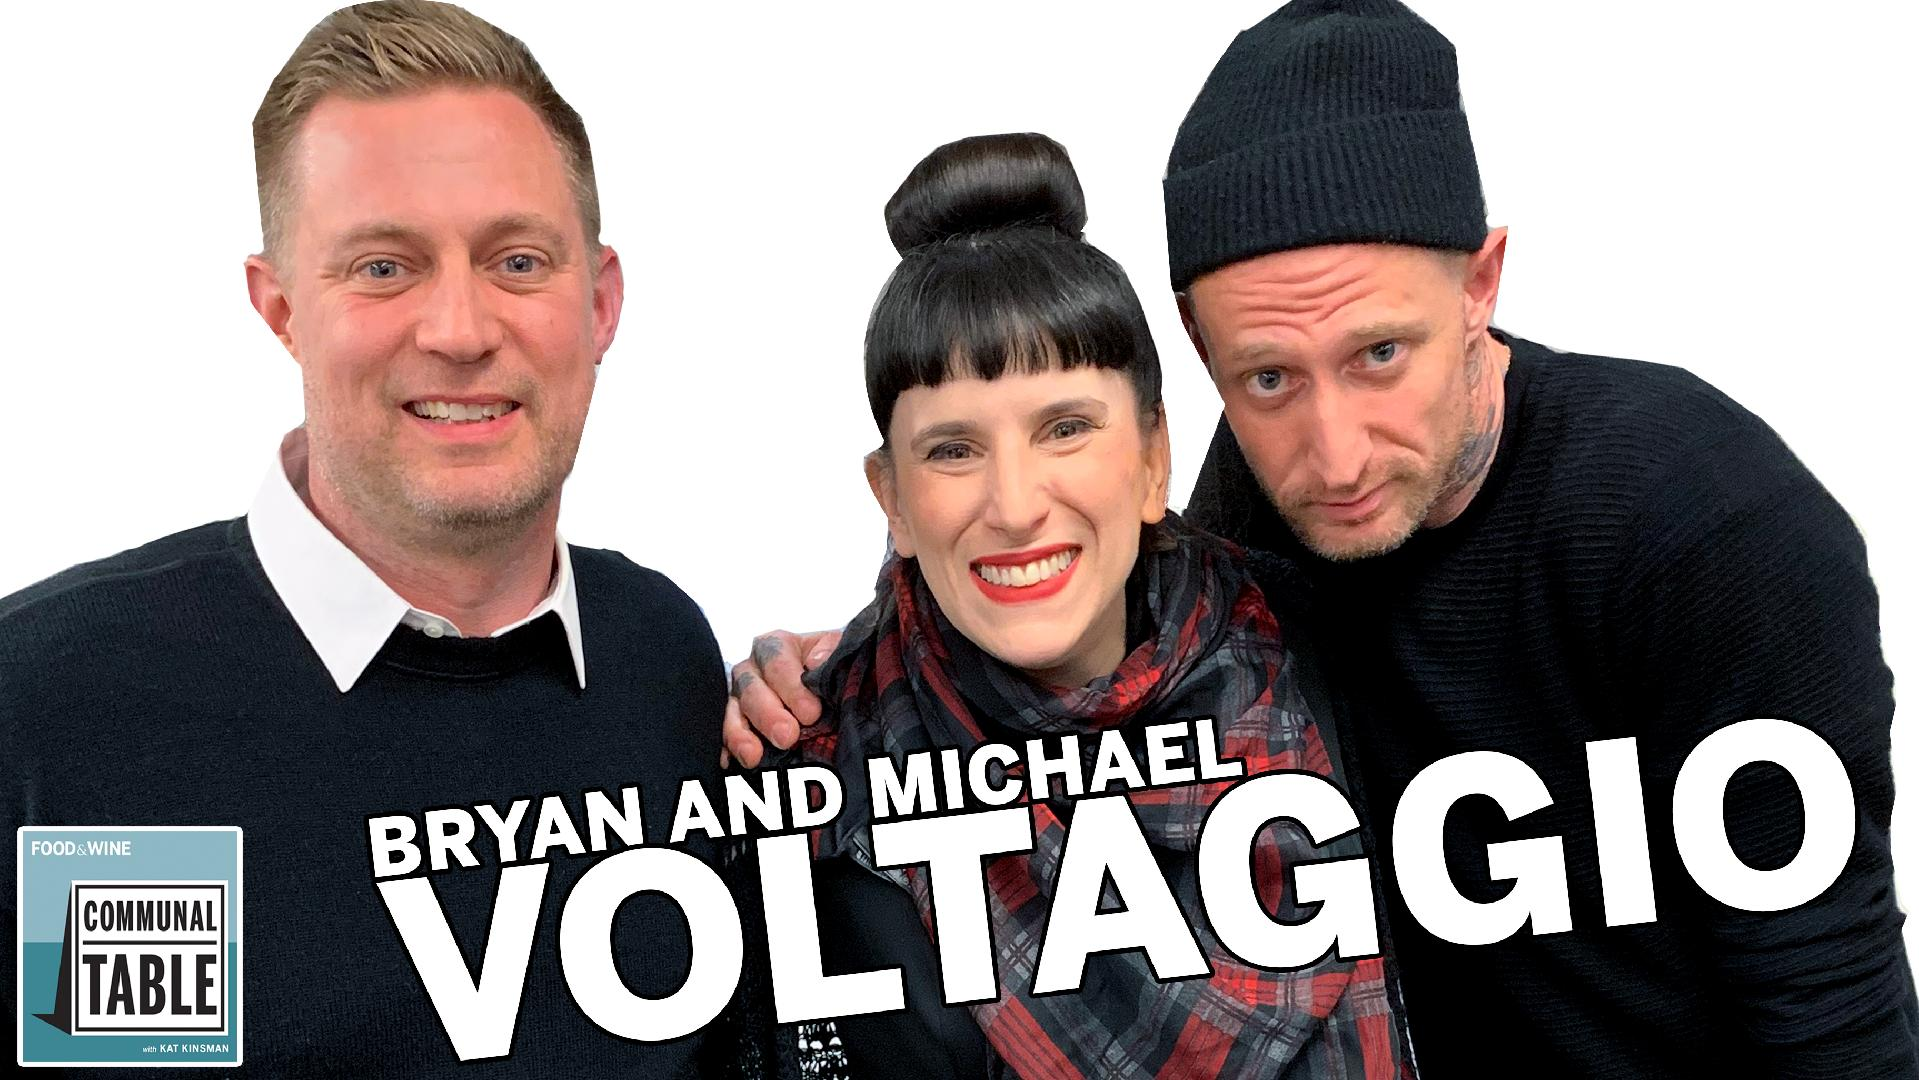 Bryan and Michael Voltaggio: Communal Table Podcast